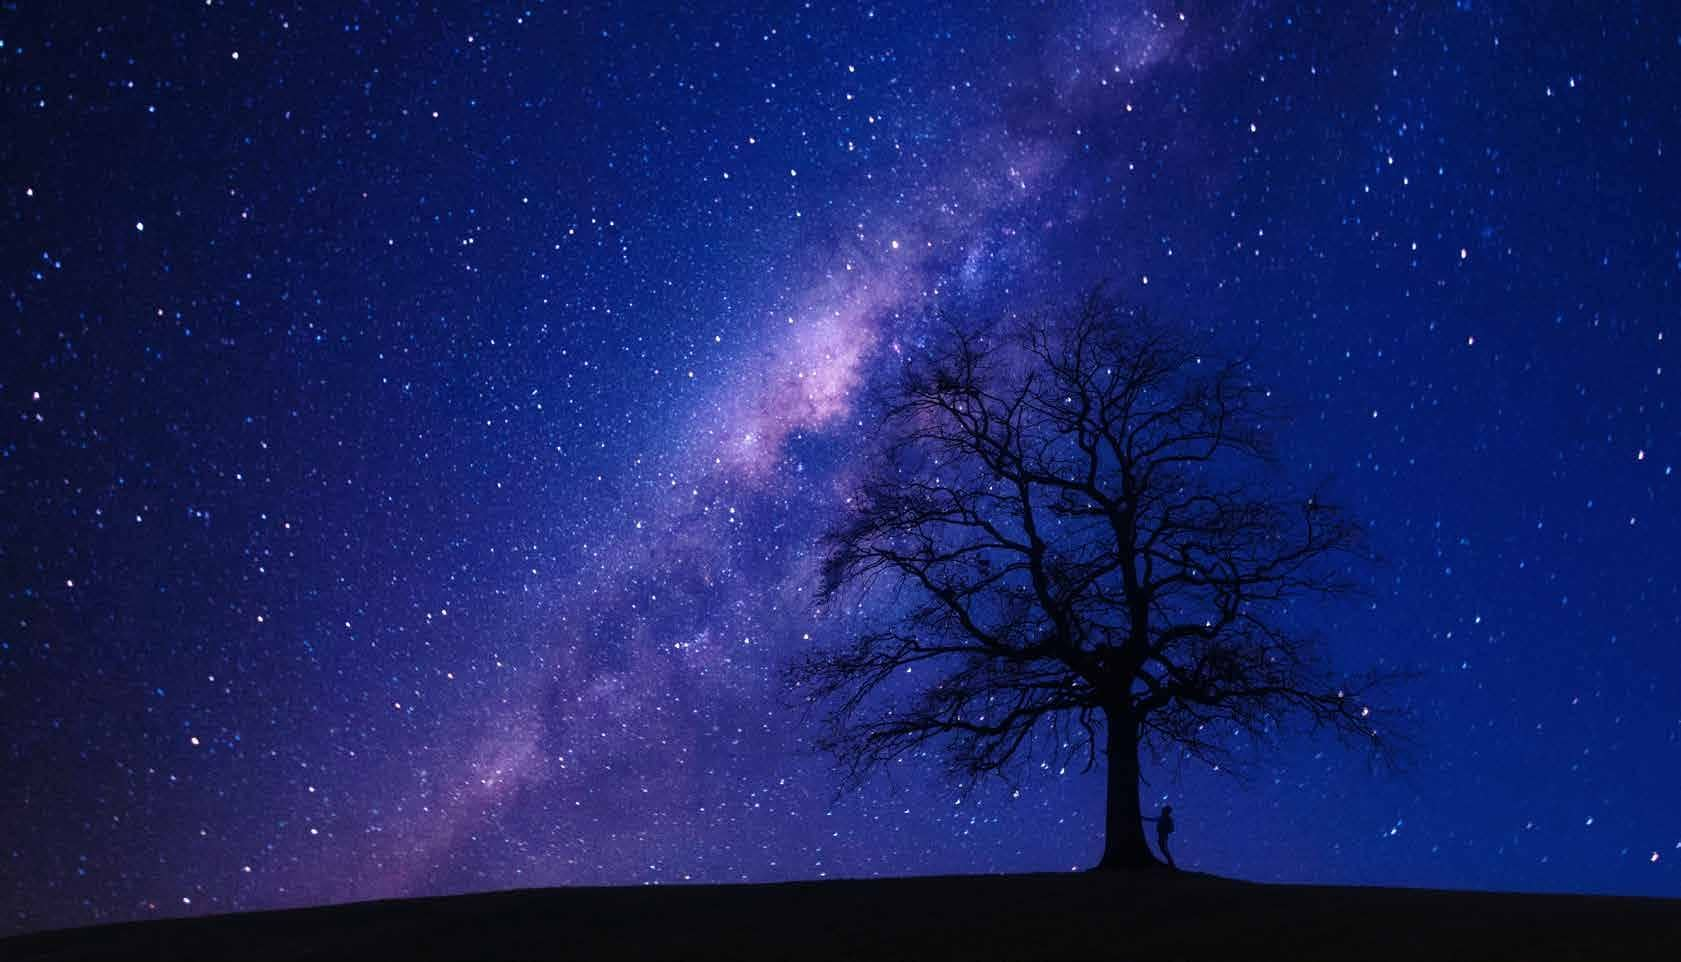 How To Capture The Milky Way?